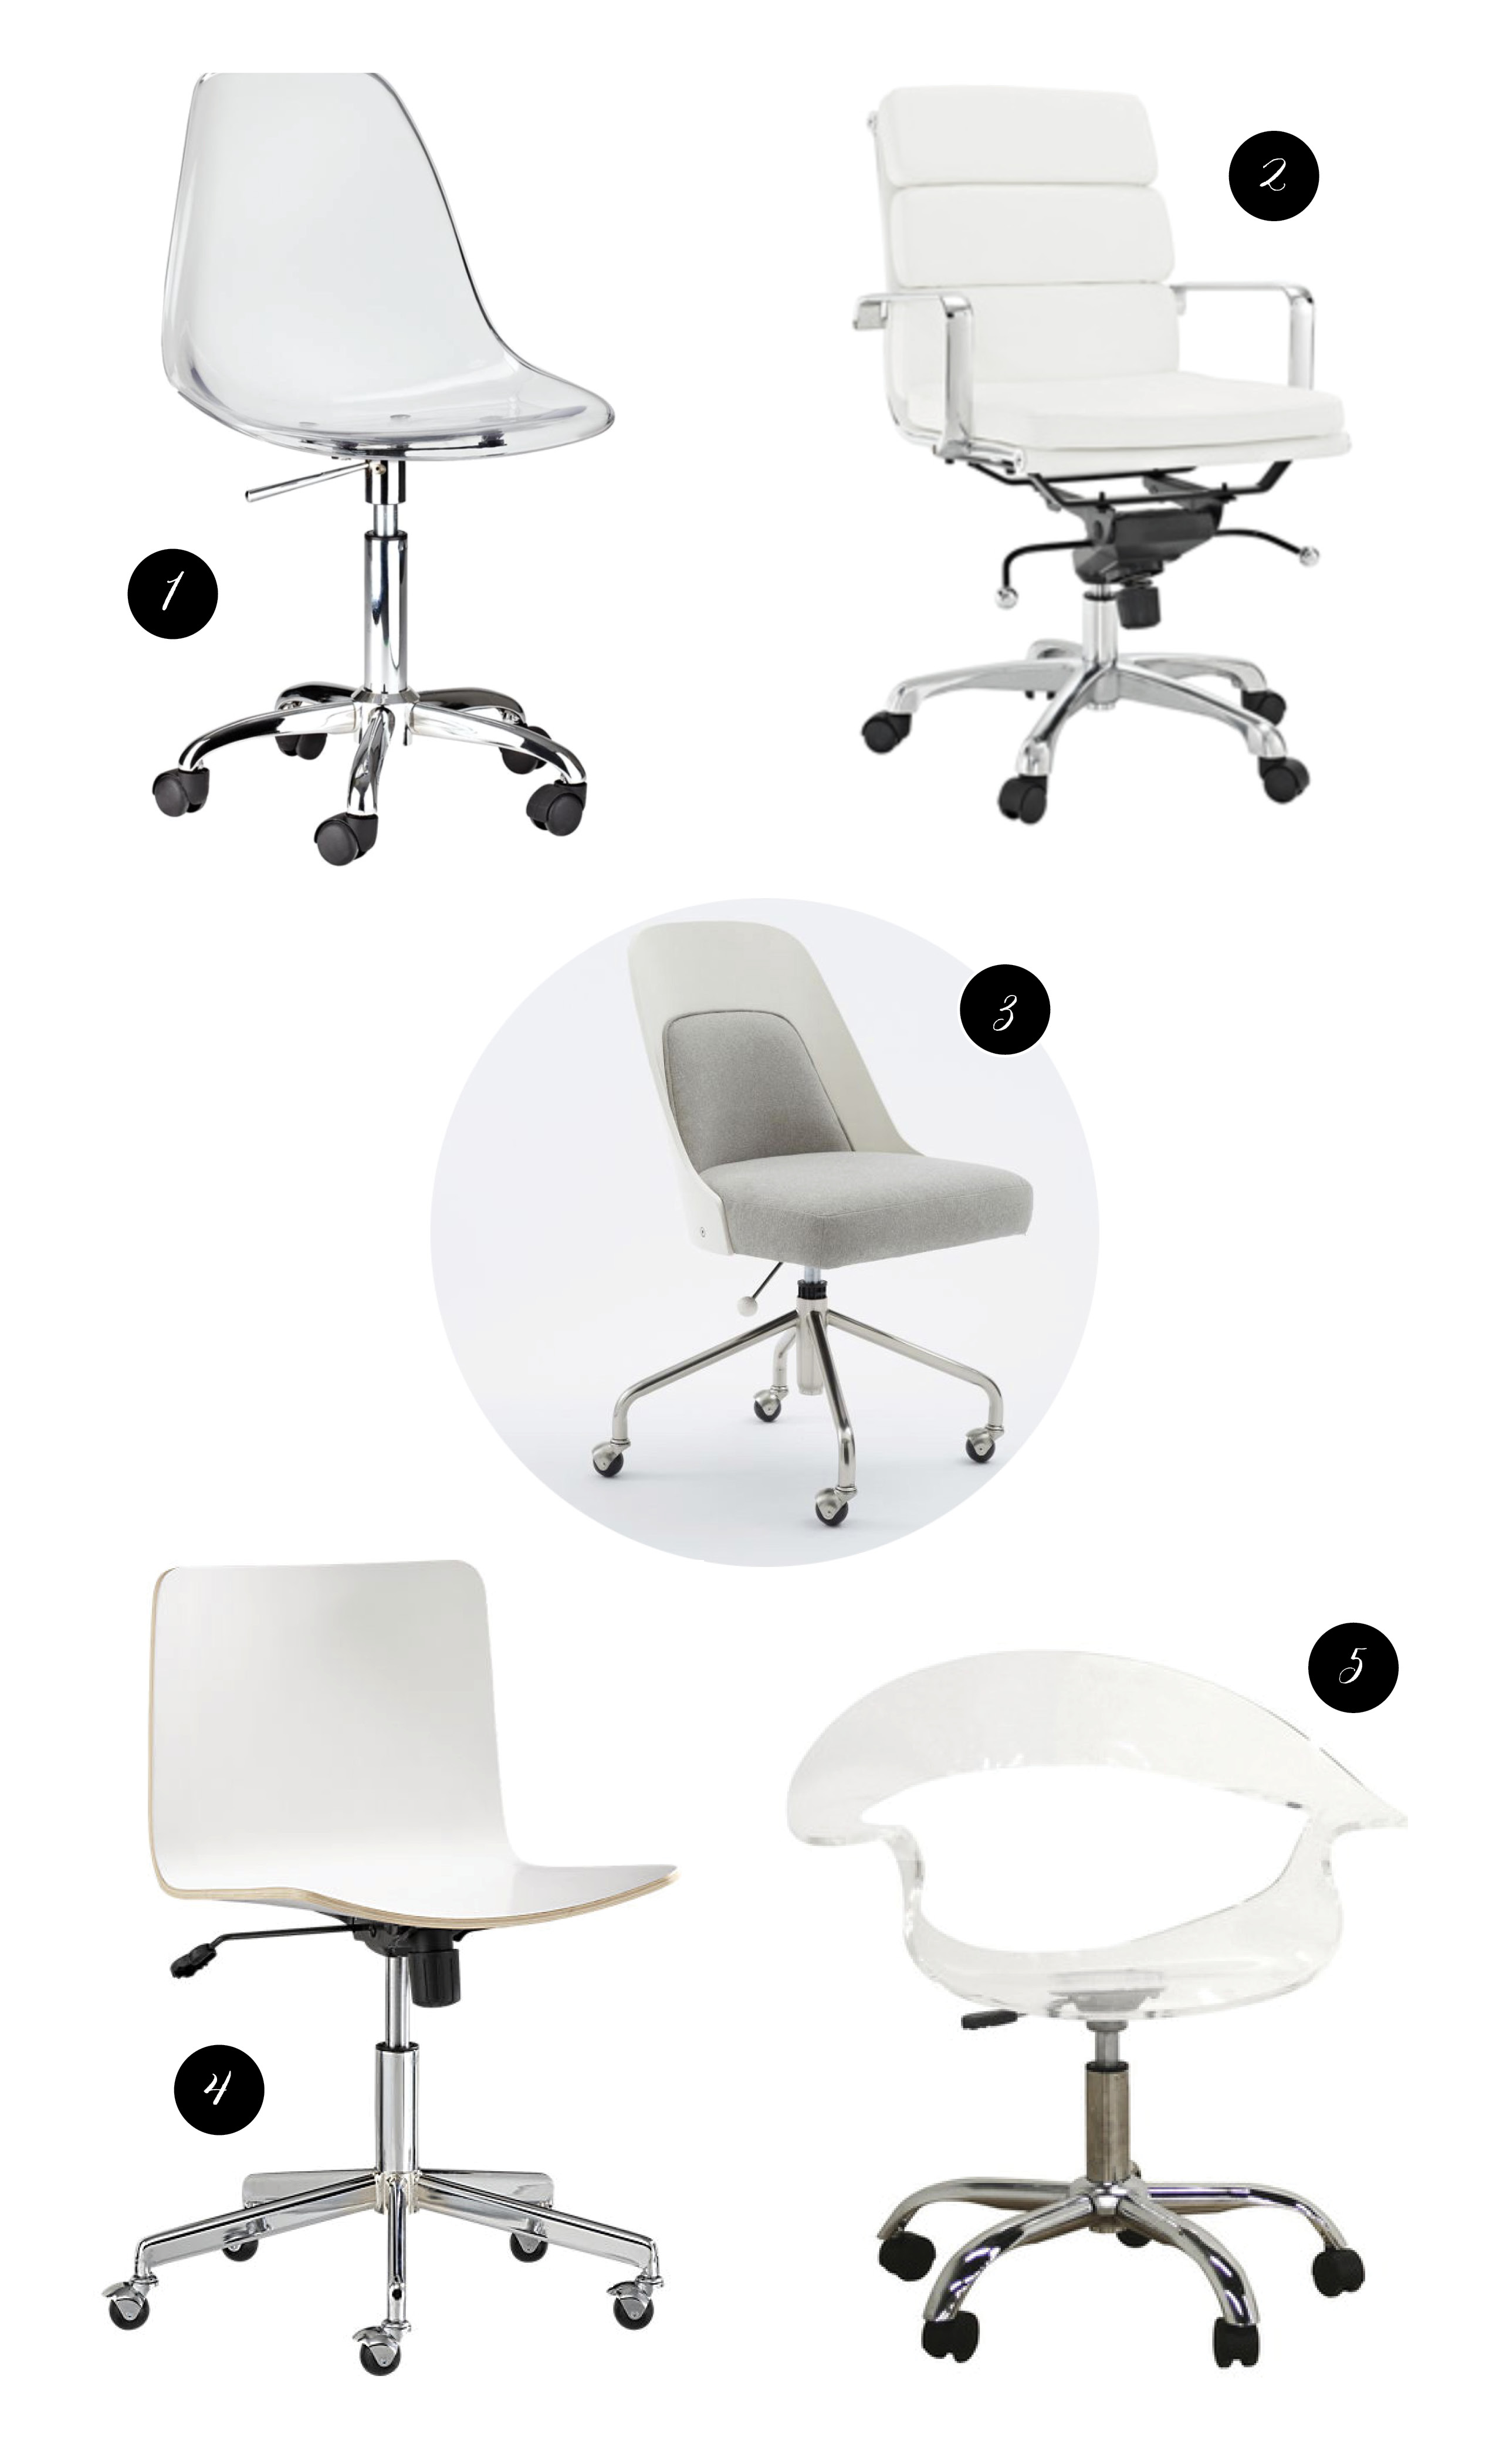 Acrylic Chair Modern White And Acrylic Swivel Desk Chairs A Feteful Life